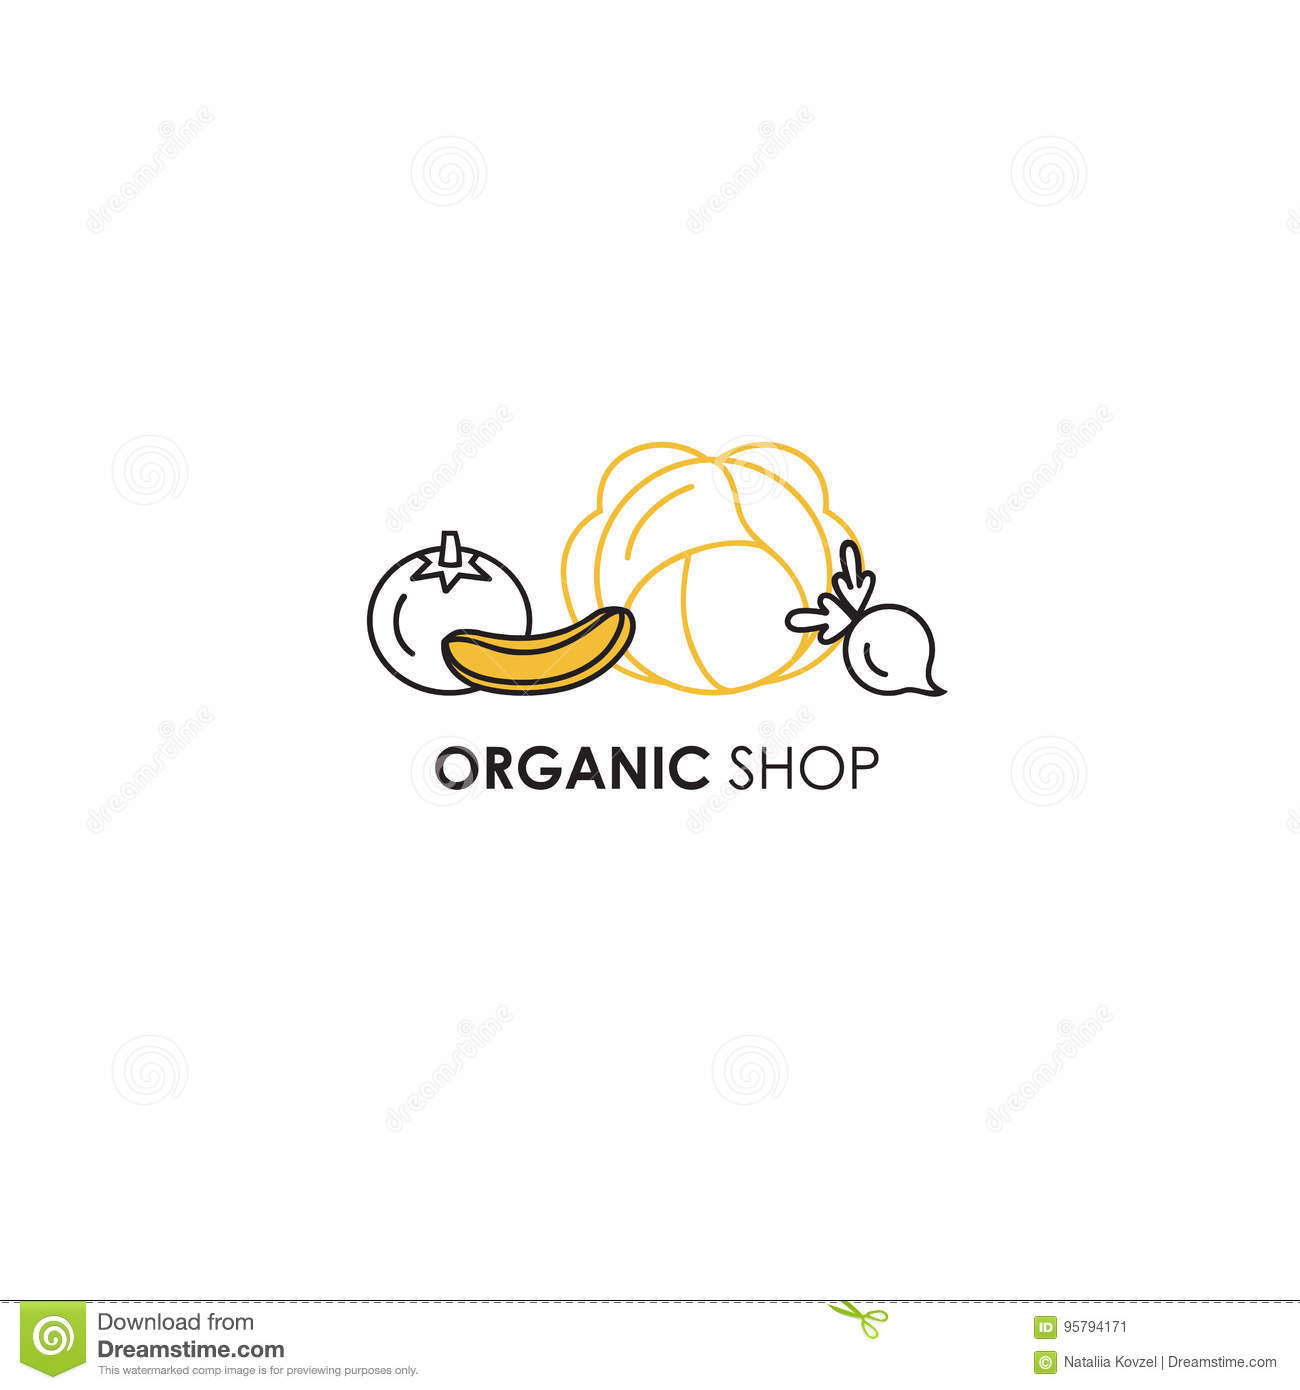 Emblem Design Template In Line Icon Style For Organic Products